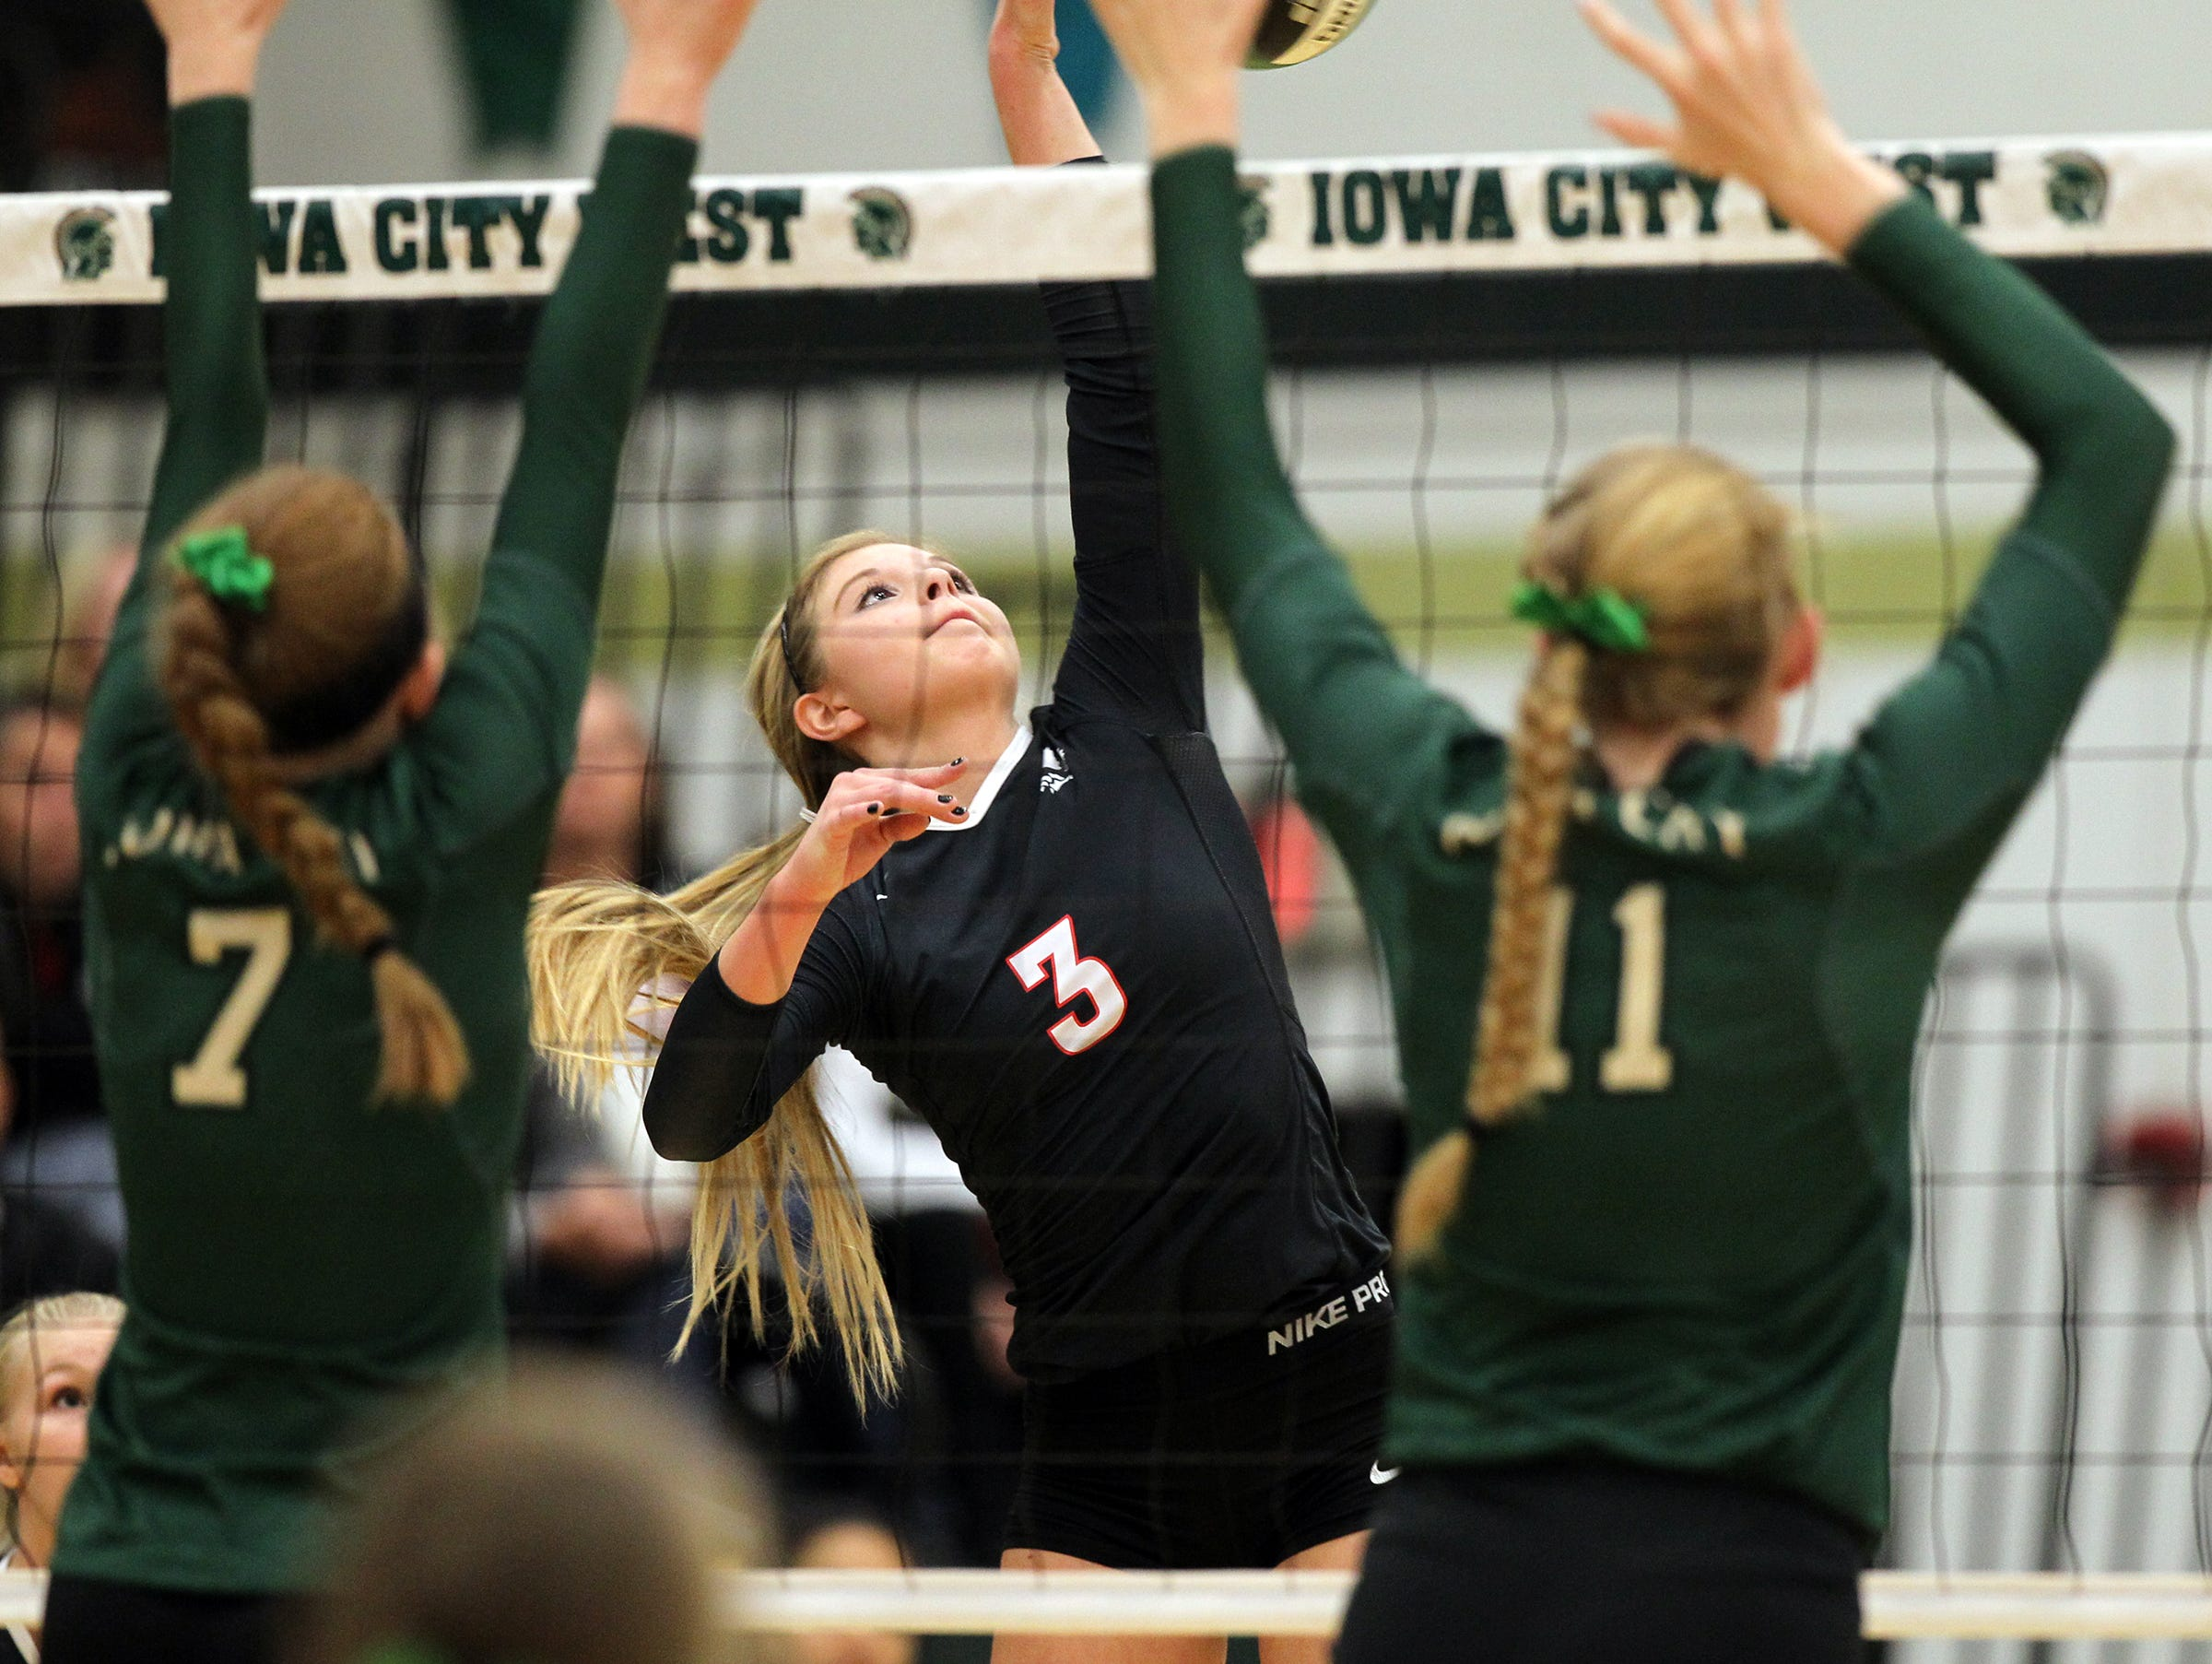 City High's Alexa Aldrich-Ingram goes for a kill during the Little Hawks' regional semifinal game at West High on Thursday, Oct. 29, 2015.